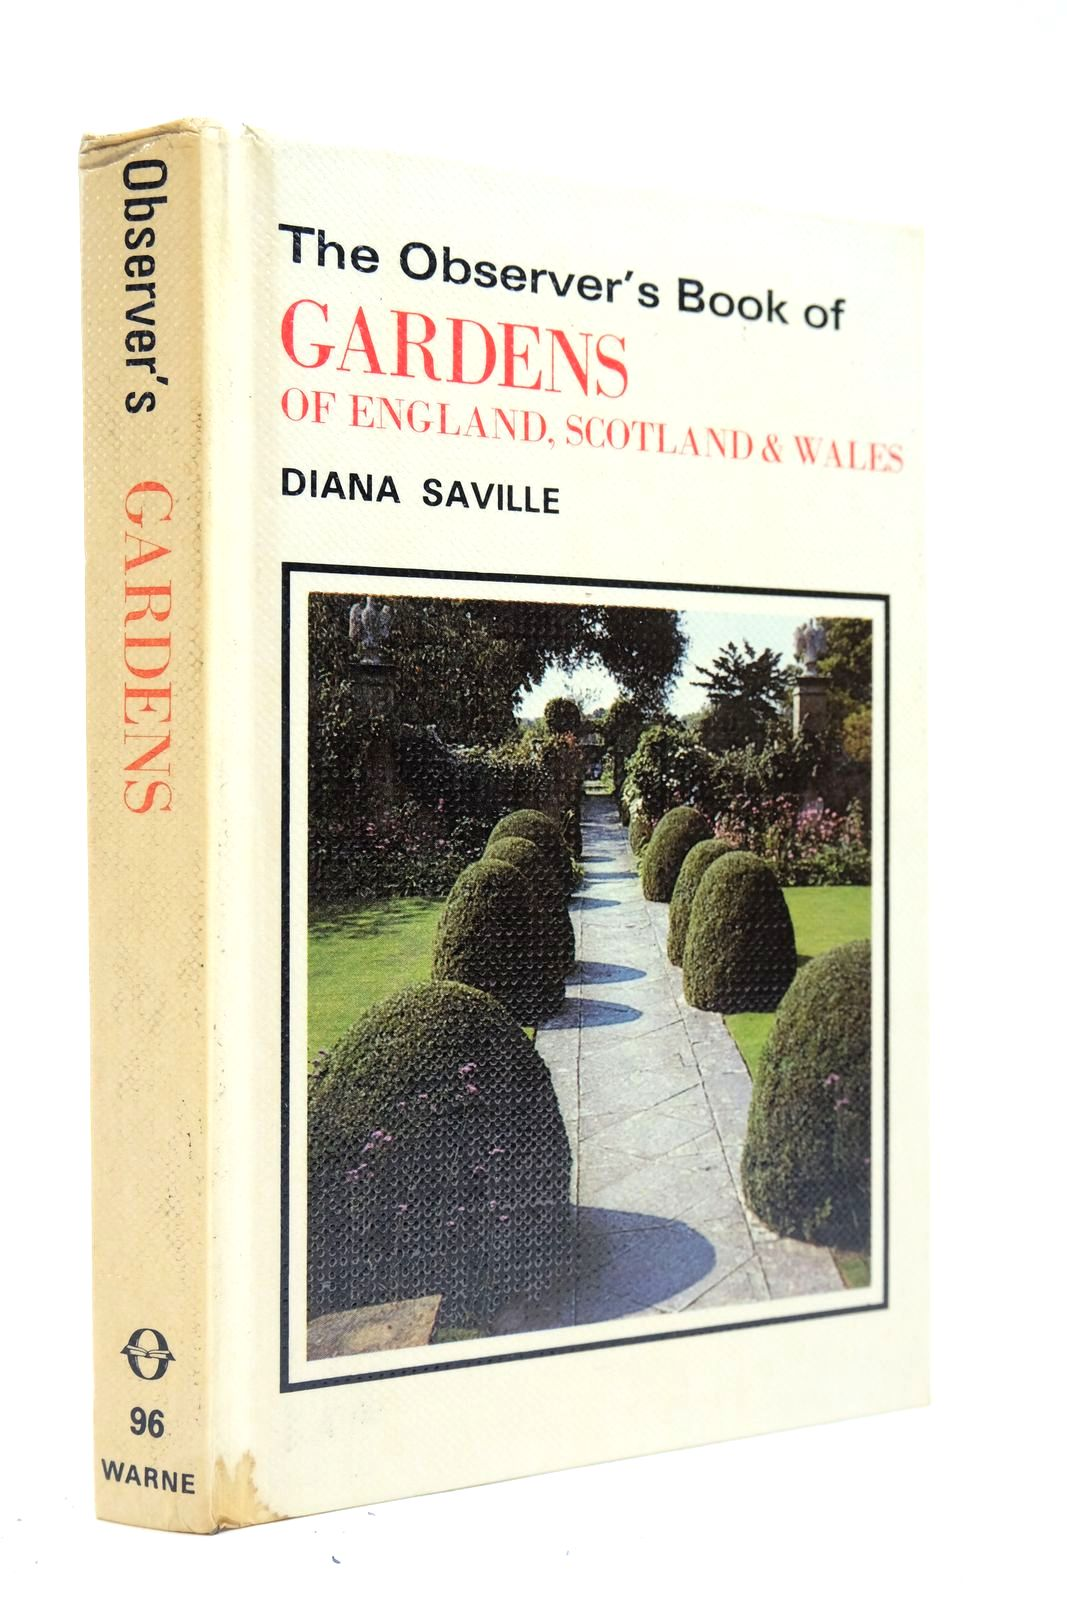 Photo of THE OBSERVER'S BOOK OF GARDENS OF ENGLAND, SCOTLAND & WALES written by Saville, Diana published by Frederick Warne & Co Ltd. (STOCK CODE: 2134666)  for sale by Stella & Rose's Books